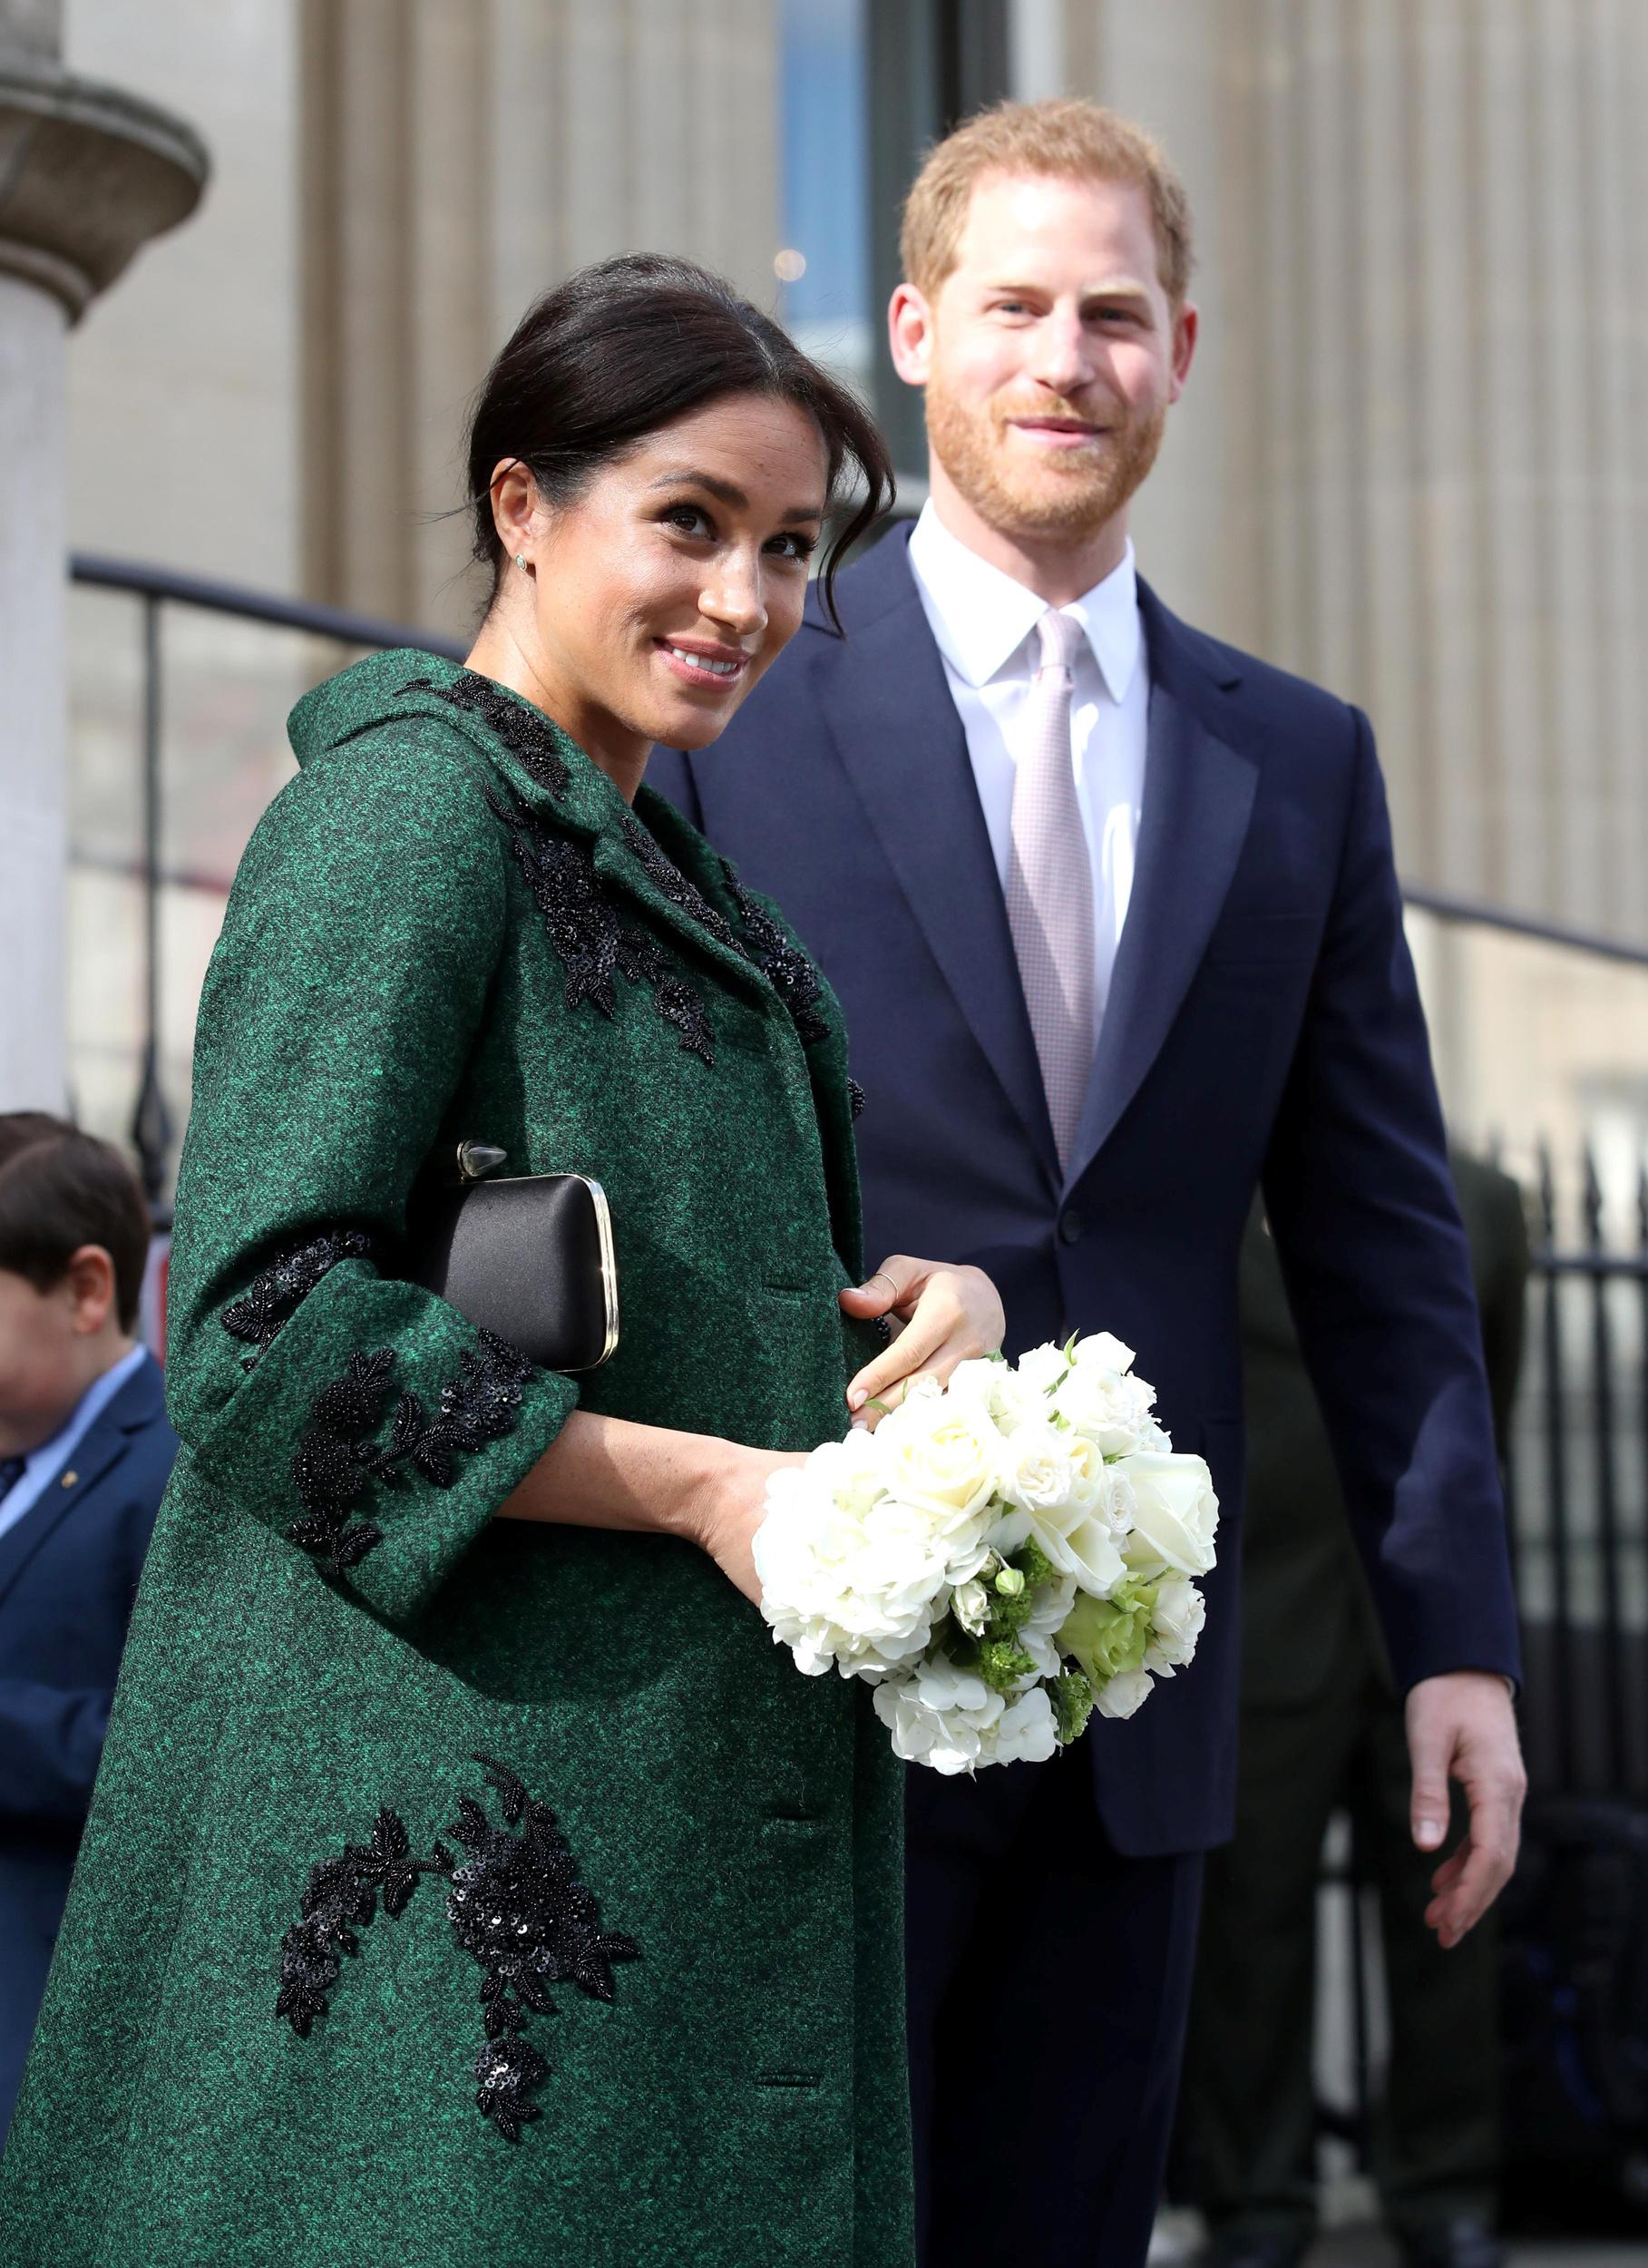 Britain's Prince Harry and Meghan, Duchess of Sussex leave after a Commonwealth Day youth event at Canada House in London, Britain, March 11, 2019. Chris Jackson/Pool via REUTERS